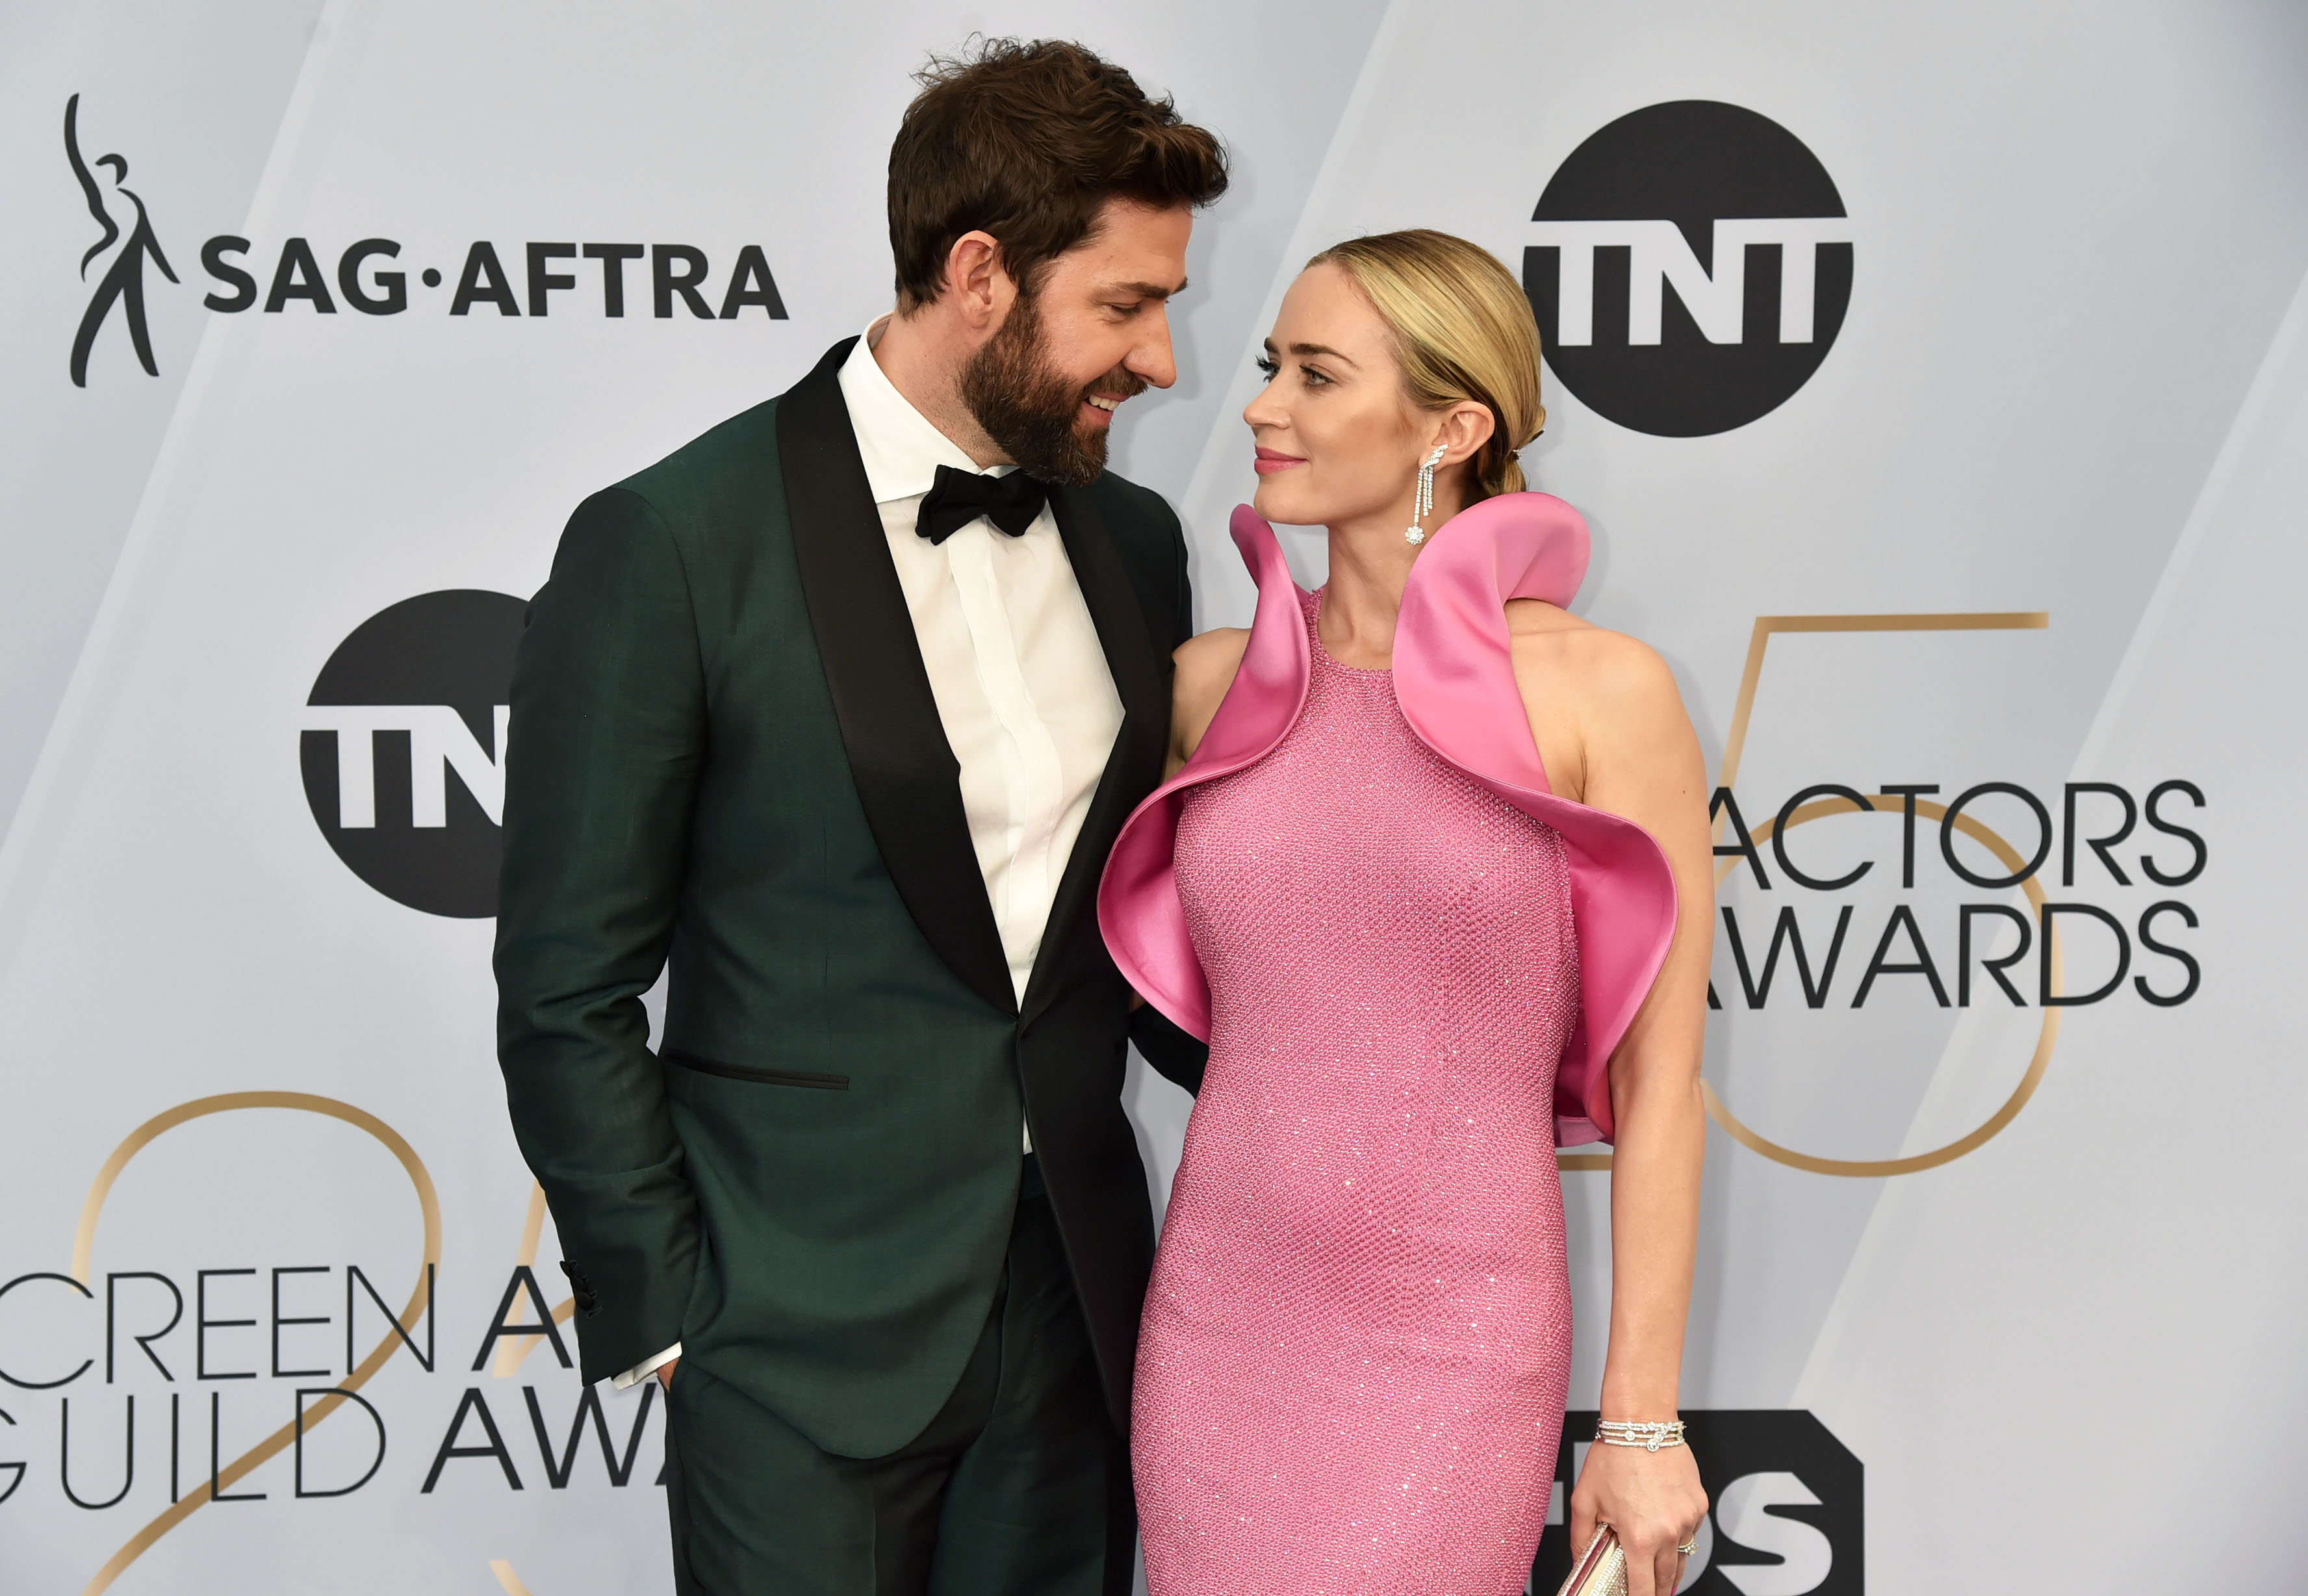 John Krasinski and Emily Blunt attend the 25th Annual Screen ActorsGuild Awards at The Shrine Auditorium on January 27, 2019 in Los Angeles, California.